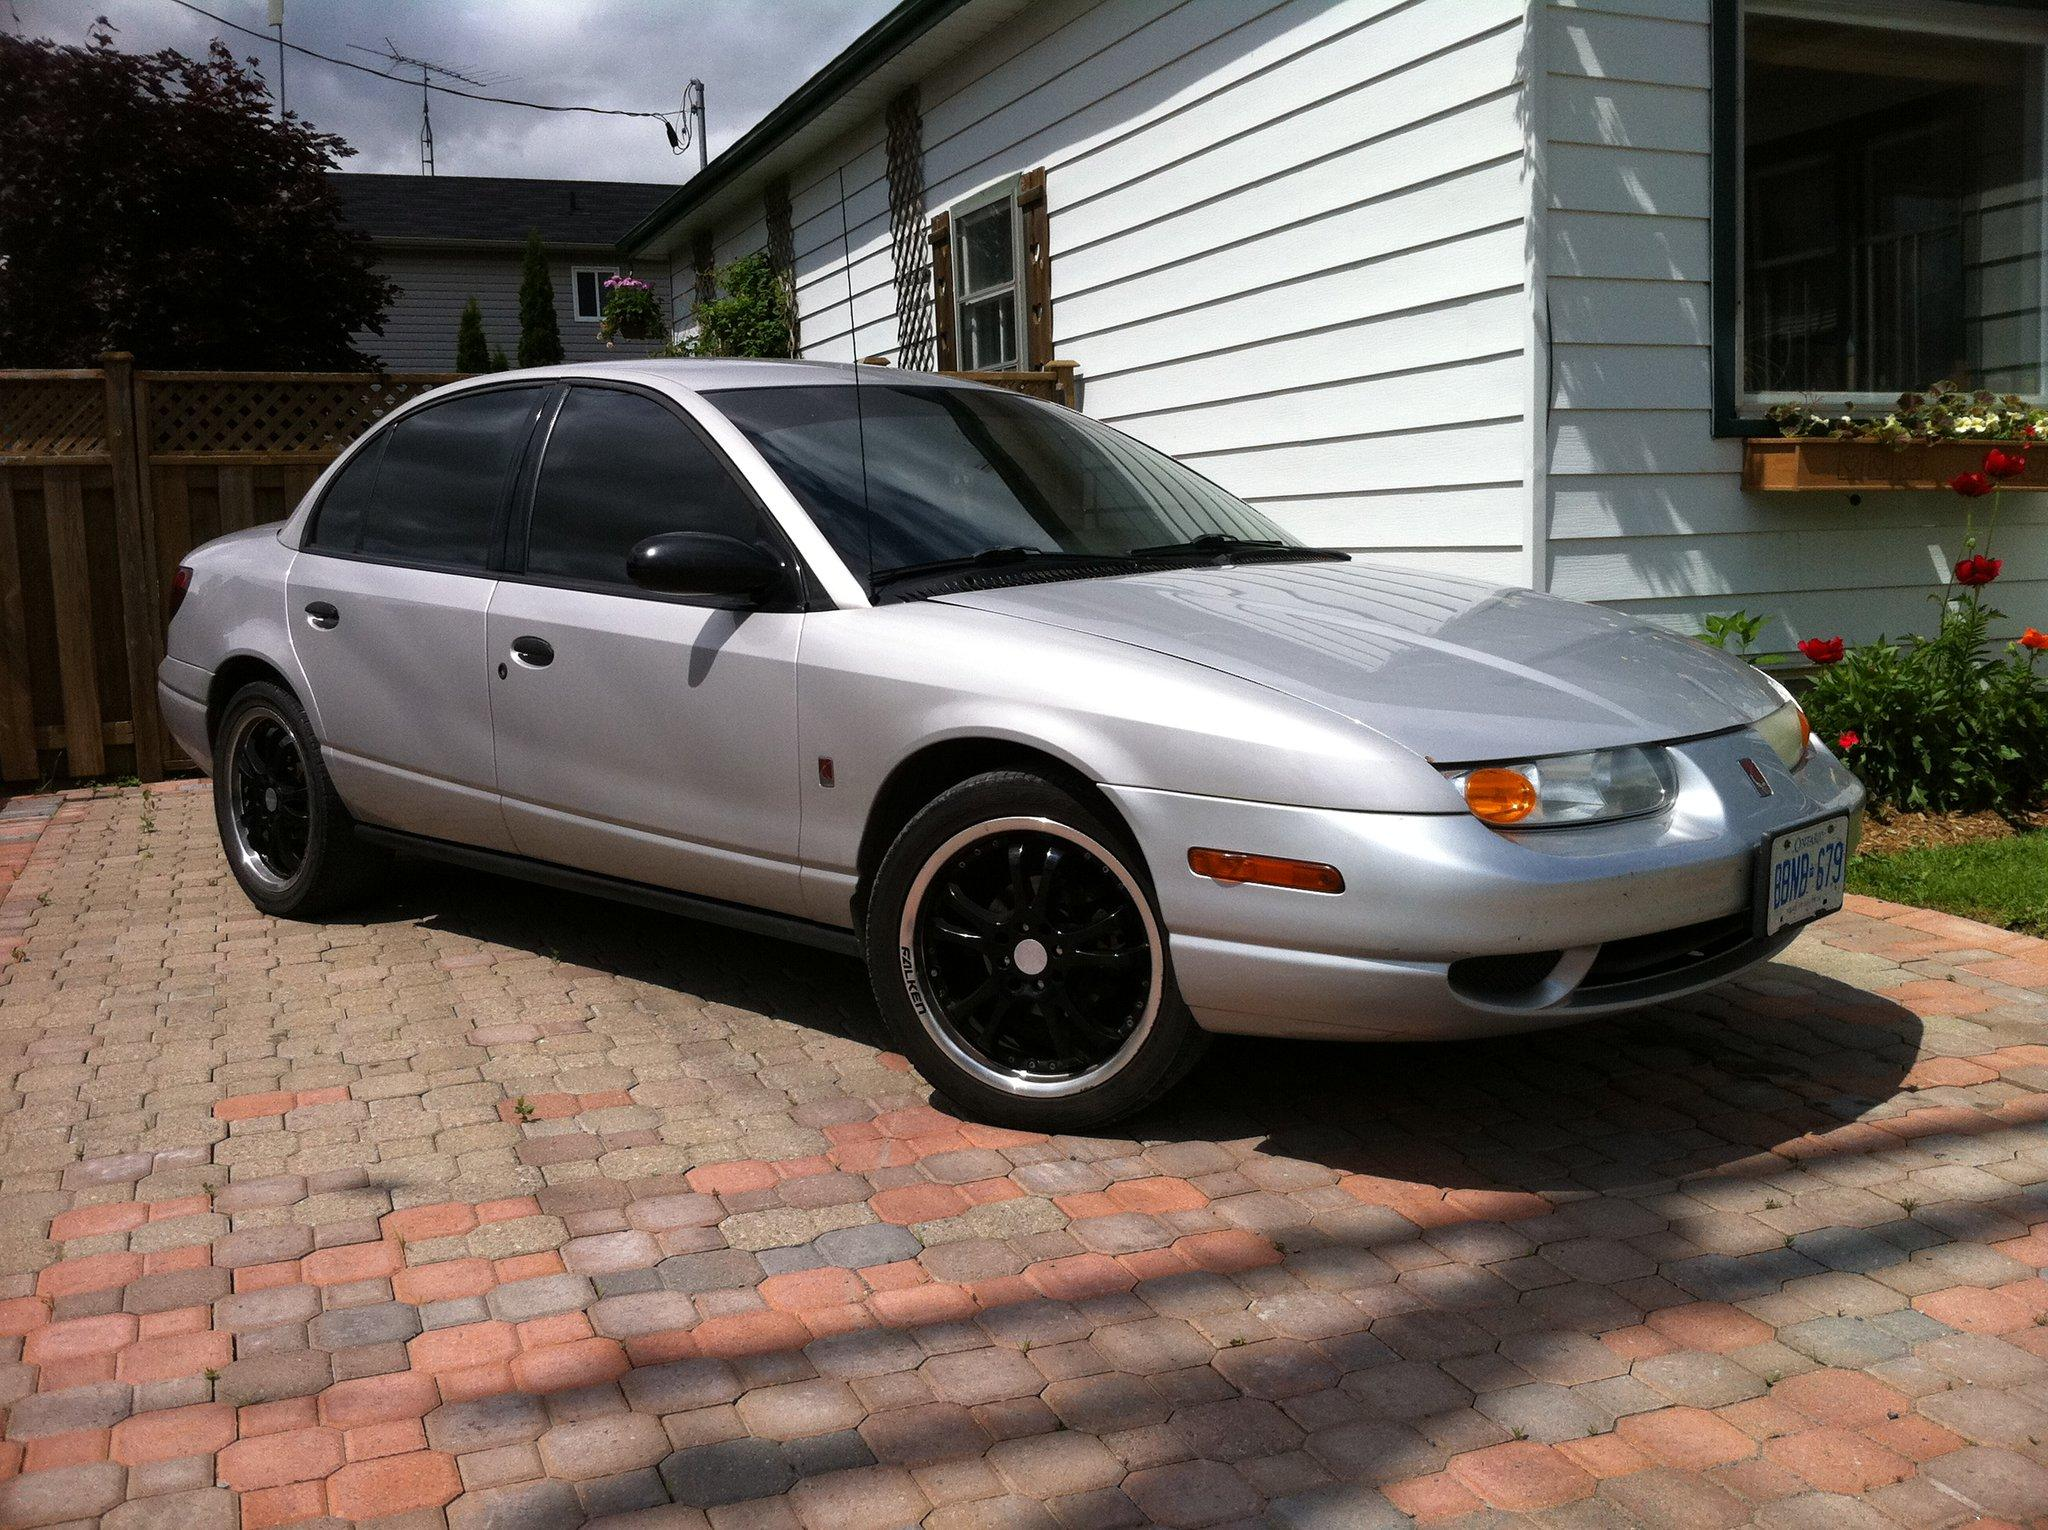 Luck27 2001 Saturn S-Series